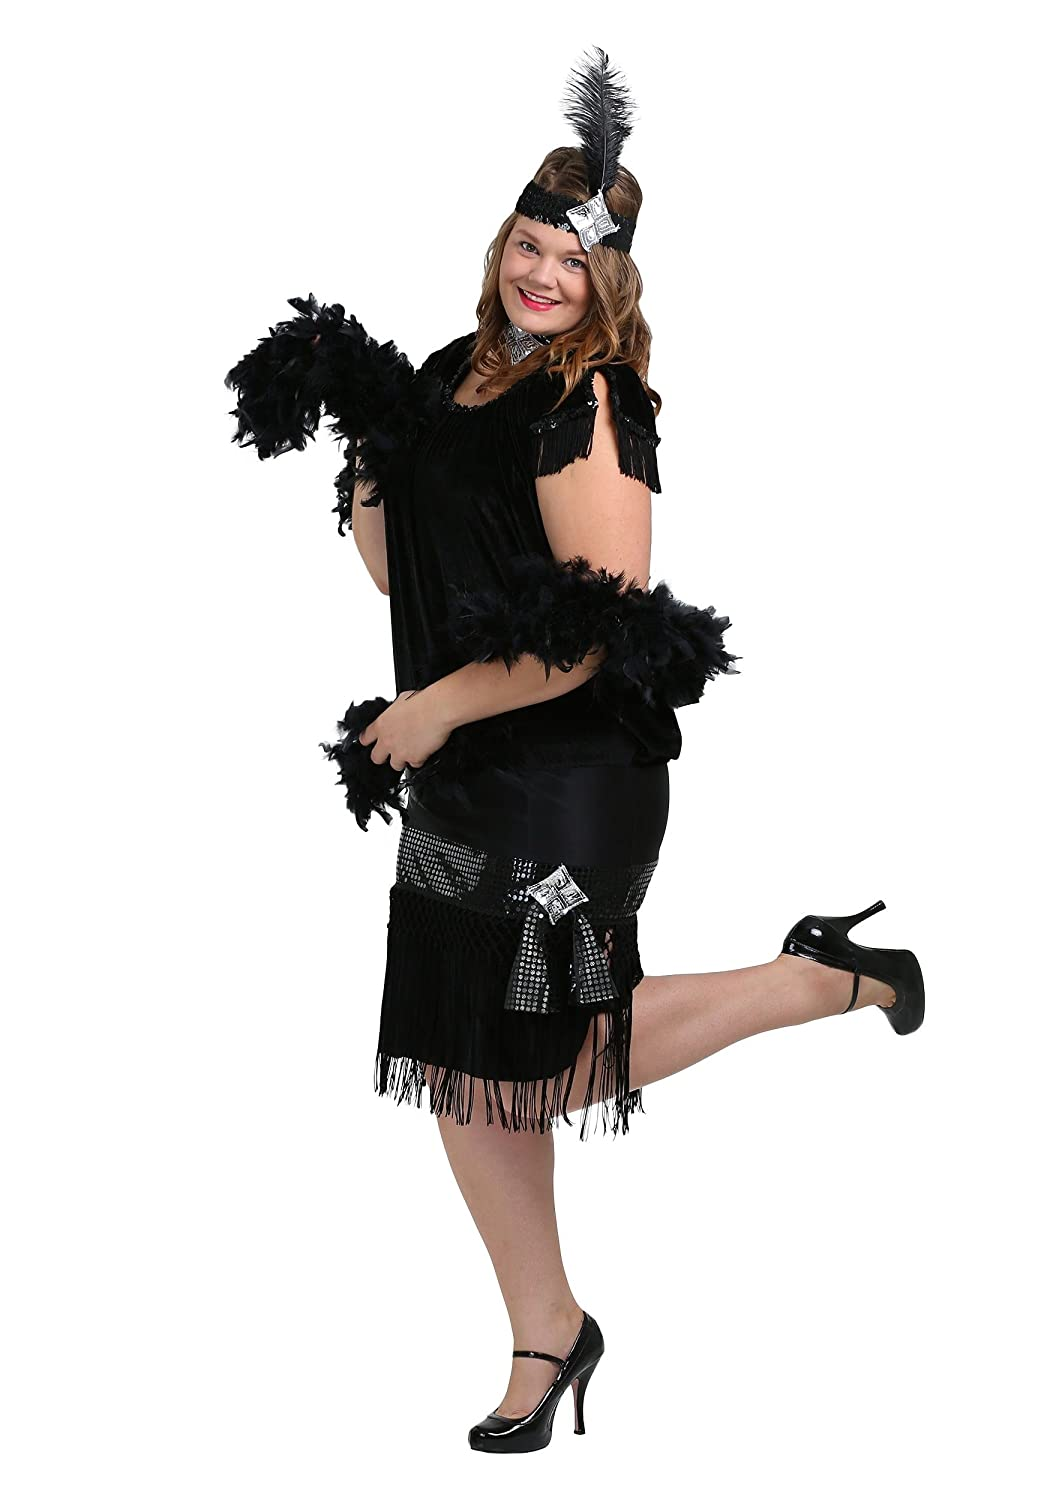 Roaring 20s Costumes- Flapper Costumes, Gangster Costumes FunCostumes Womens Deluxe Velvet Flapper Costume $59.99 AT vintagedancer.com